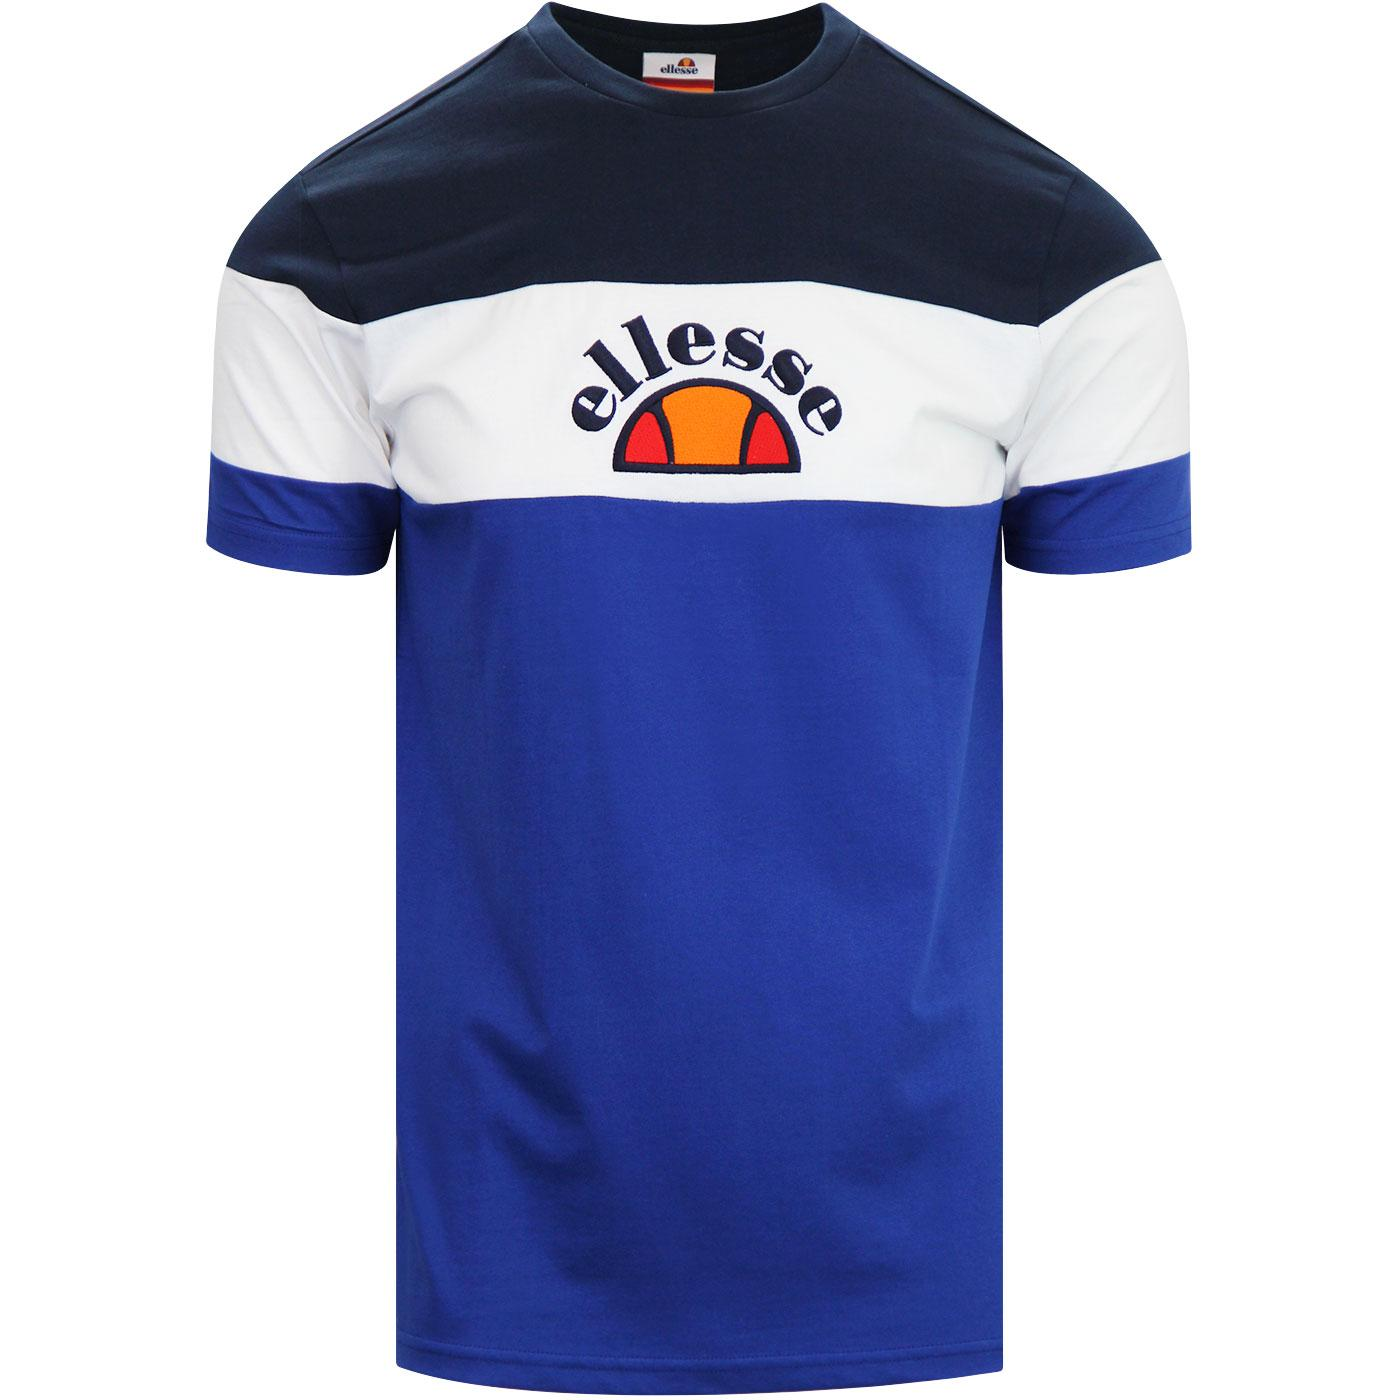 Juby ELLESSE Retro 80s Cut & Sew Panel T-Shirt Bl